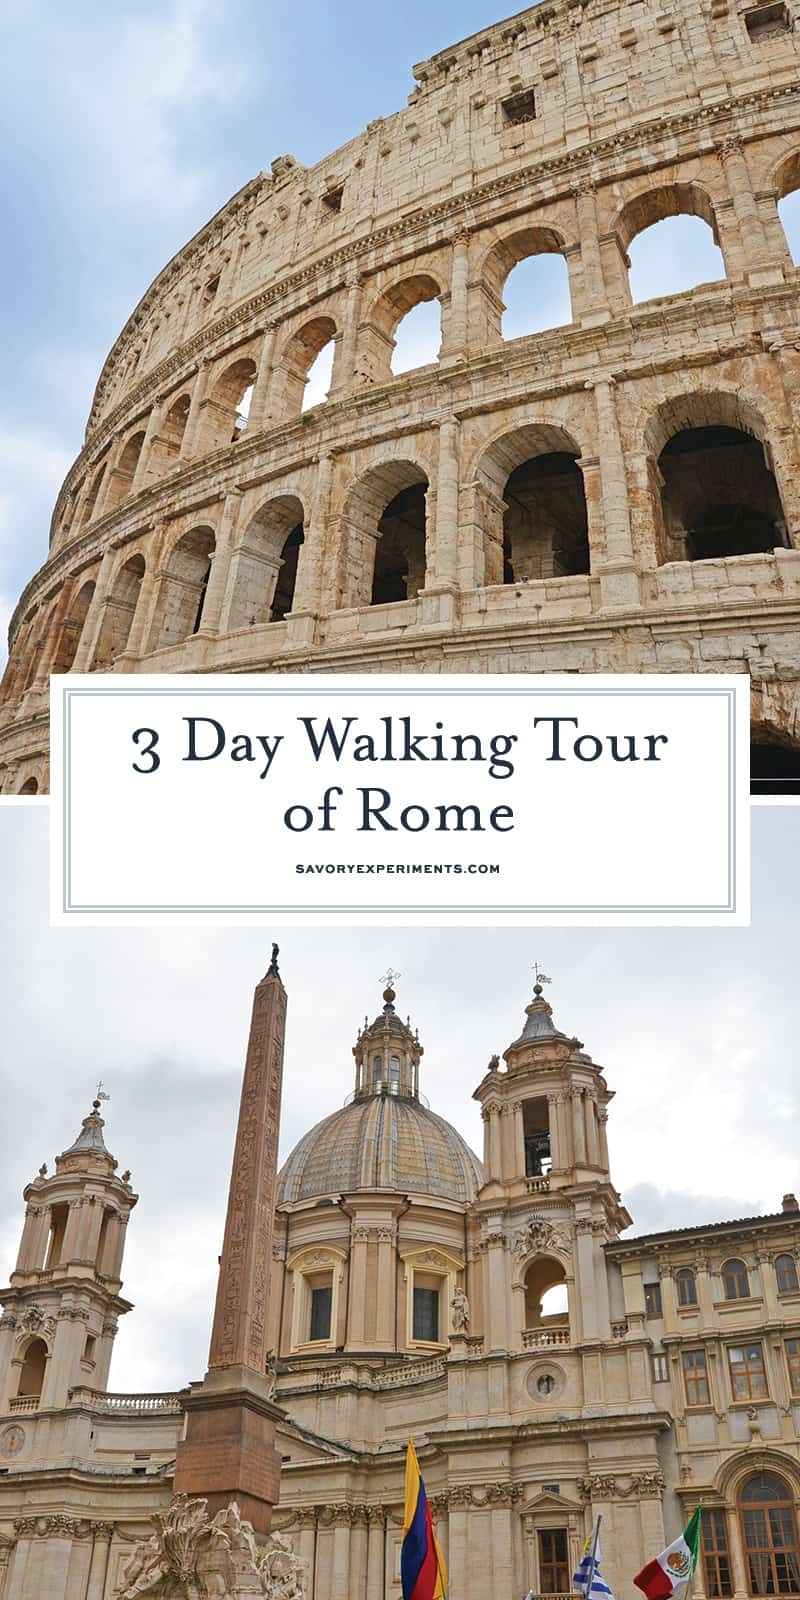 Get ready to start planning your 3 day walking tour of rome! Before leaving check out my Rome travel tips and must-eat items on Roman menus. #romeitaly www.savoryexperiments.com